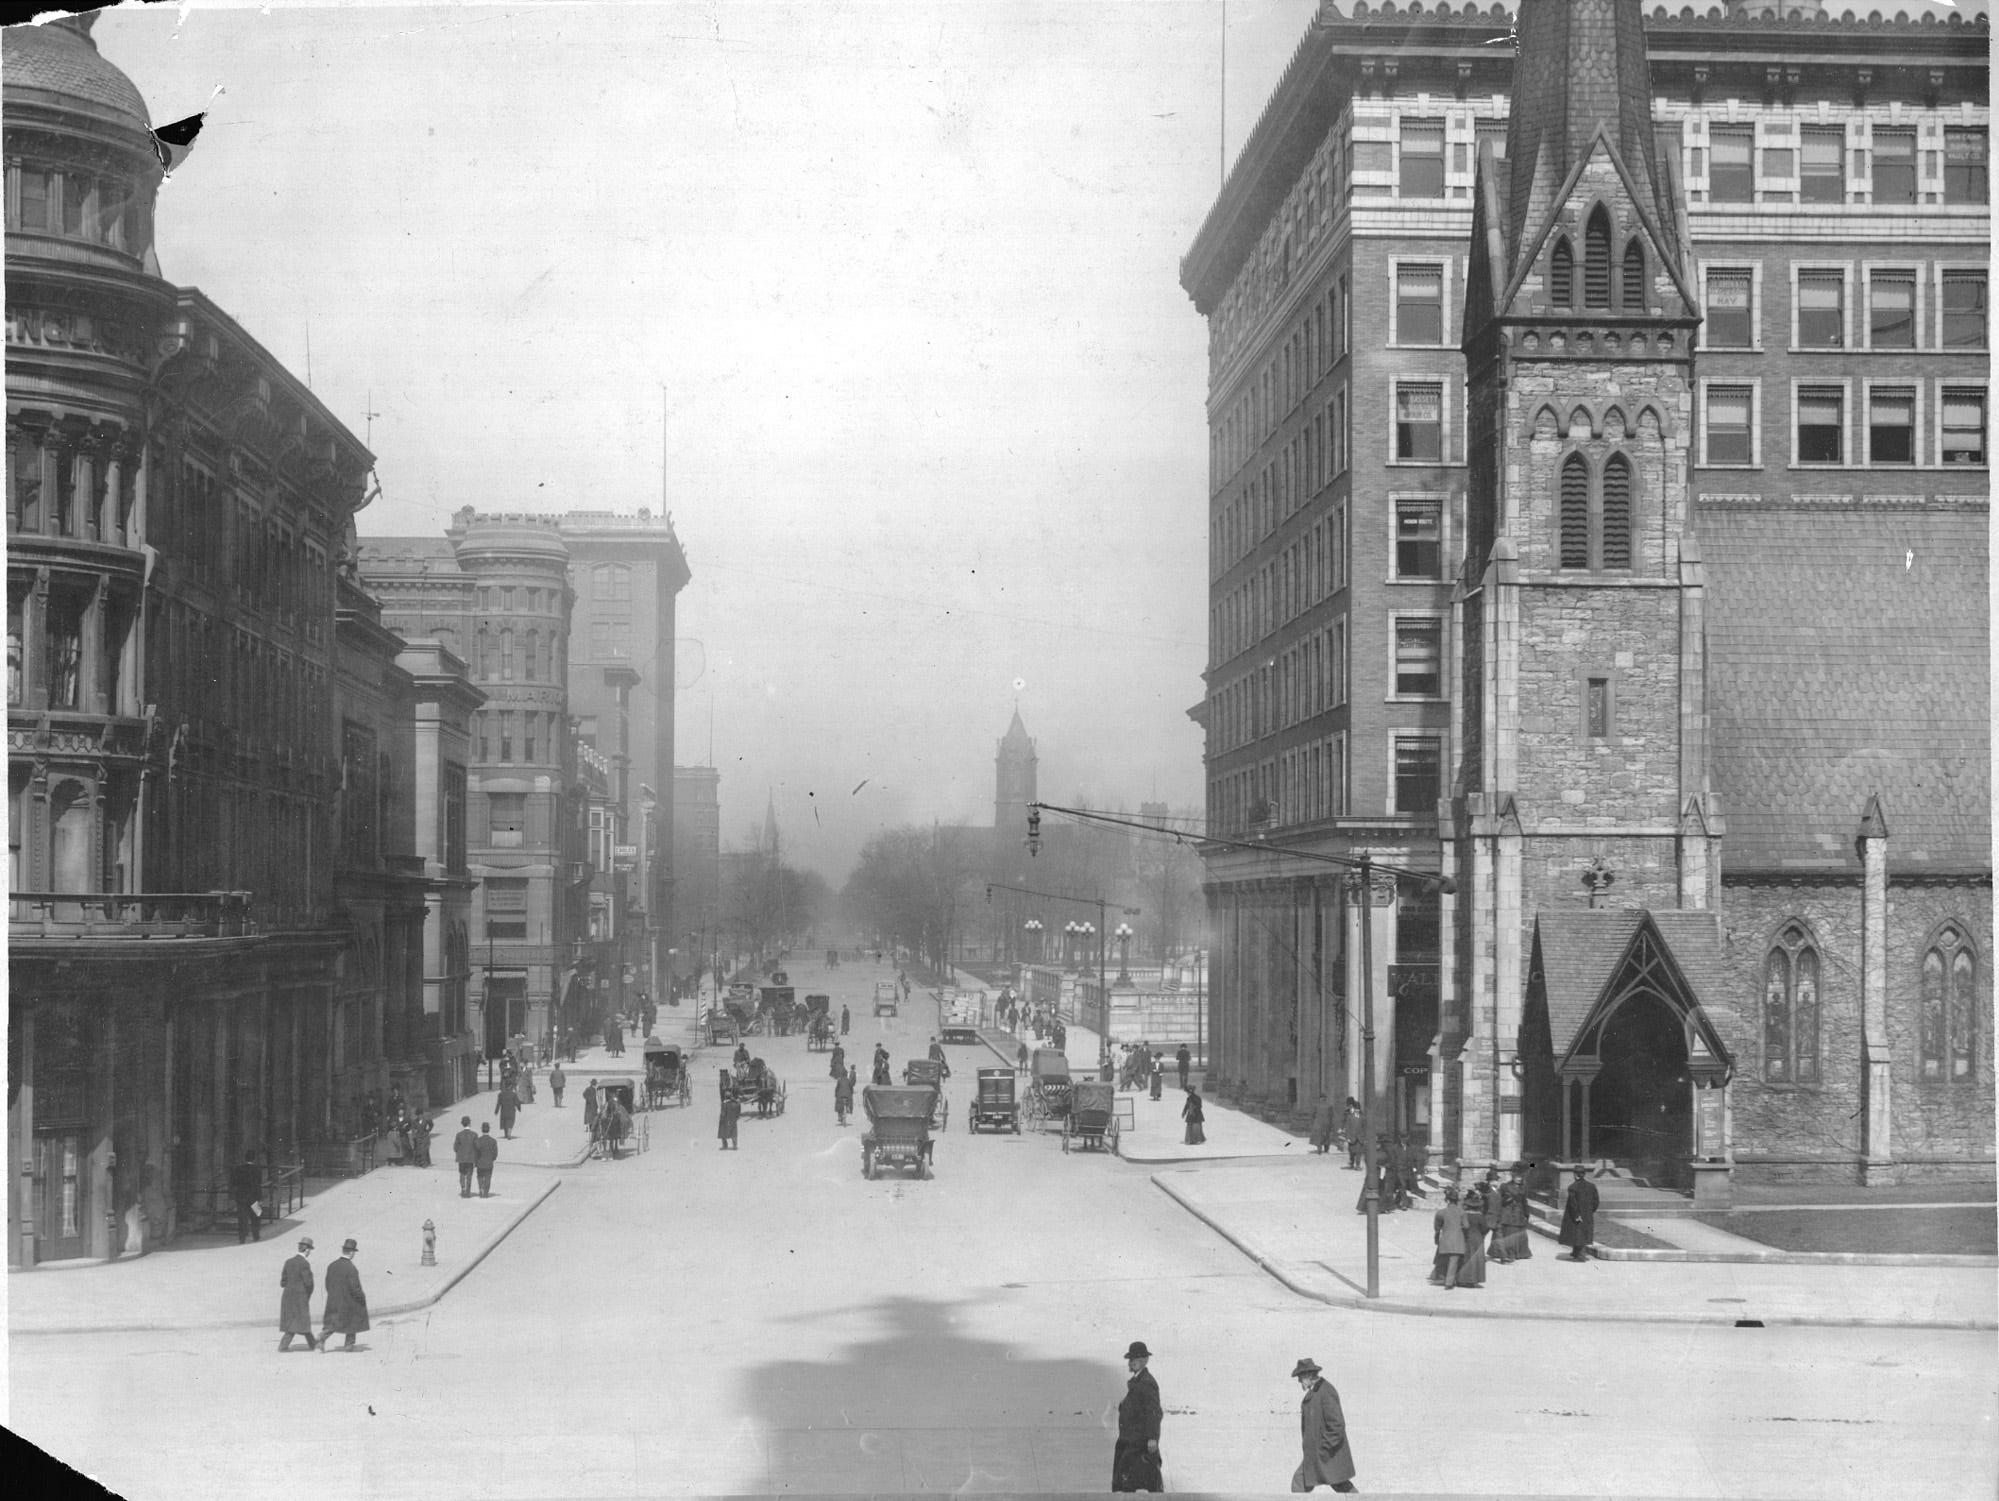 Meridian Street, looking north from the steps of the Soldiers and Sailors Monument on the Circle, circa 1910. At left is the English Hotel and at right the Christ Church Cathedral. Only a couple of motorized vehicles share Meridian Street with horse and buggies. Other identifiable buildings in the block north of Ohio Stree